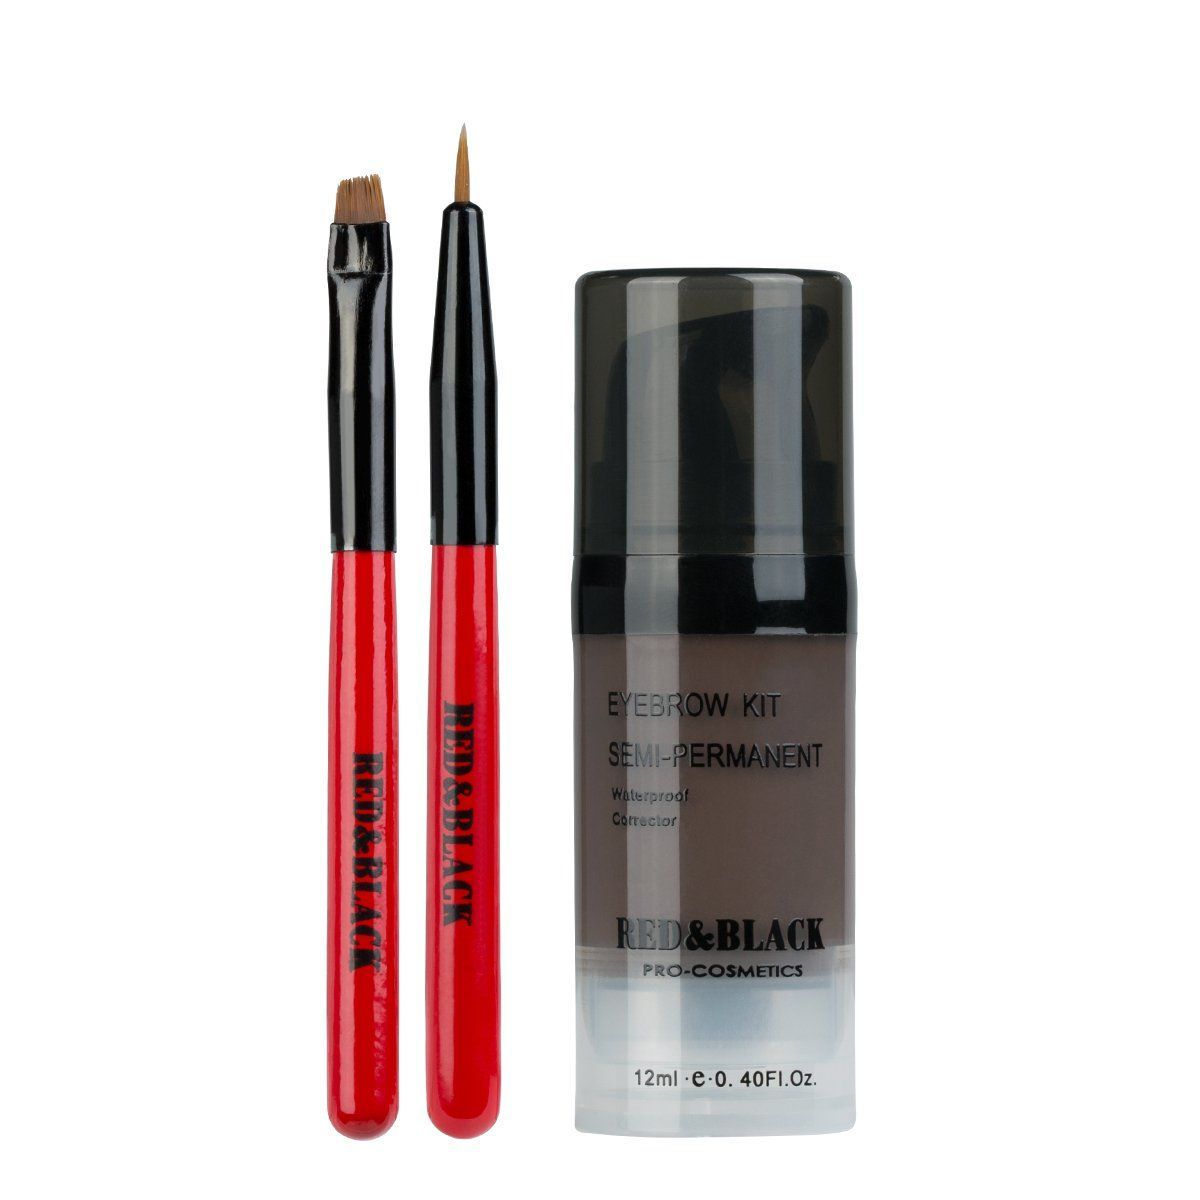 Redblack Semi Permanent Eyebrow Cream Kit Long Lasting Tinted